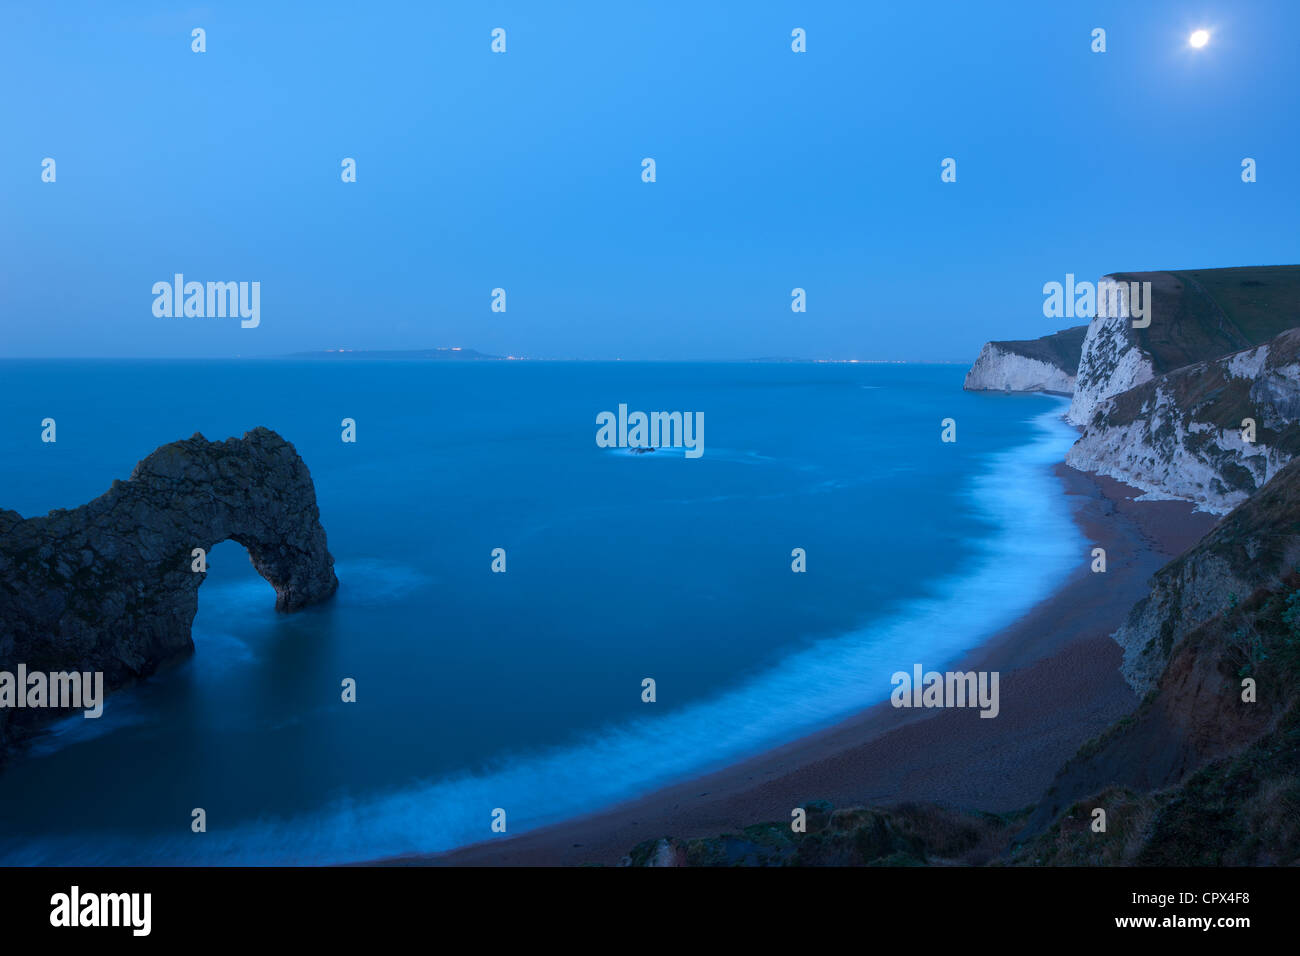 moonlight on the Jurassic Coast, with Durdle Door (left) and Portland beyond, Dorset, England, UK - Stock Image